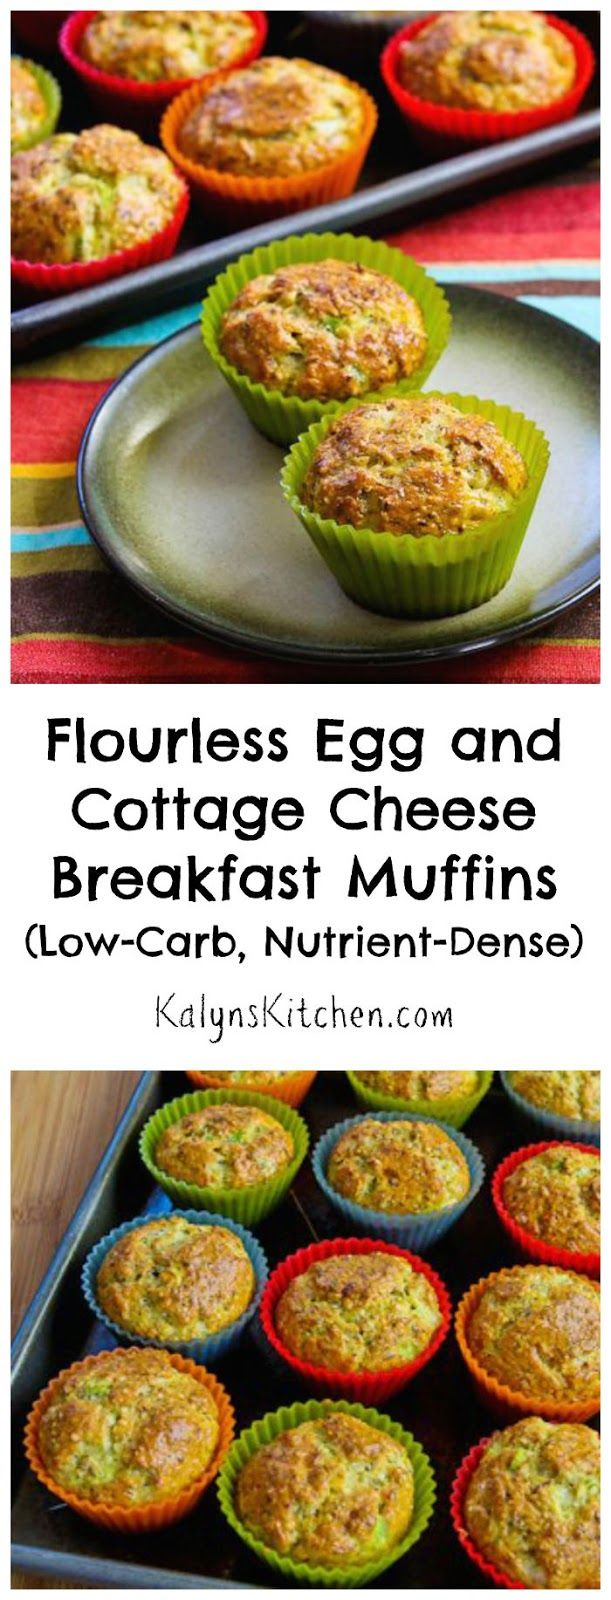 Flourless Egg and Cottage Cheese Savory Breakfast Muffins Recipe (Nutrient-Dense, Low-Carb, Gluten-Free) | Kalyn's Kitchen®